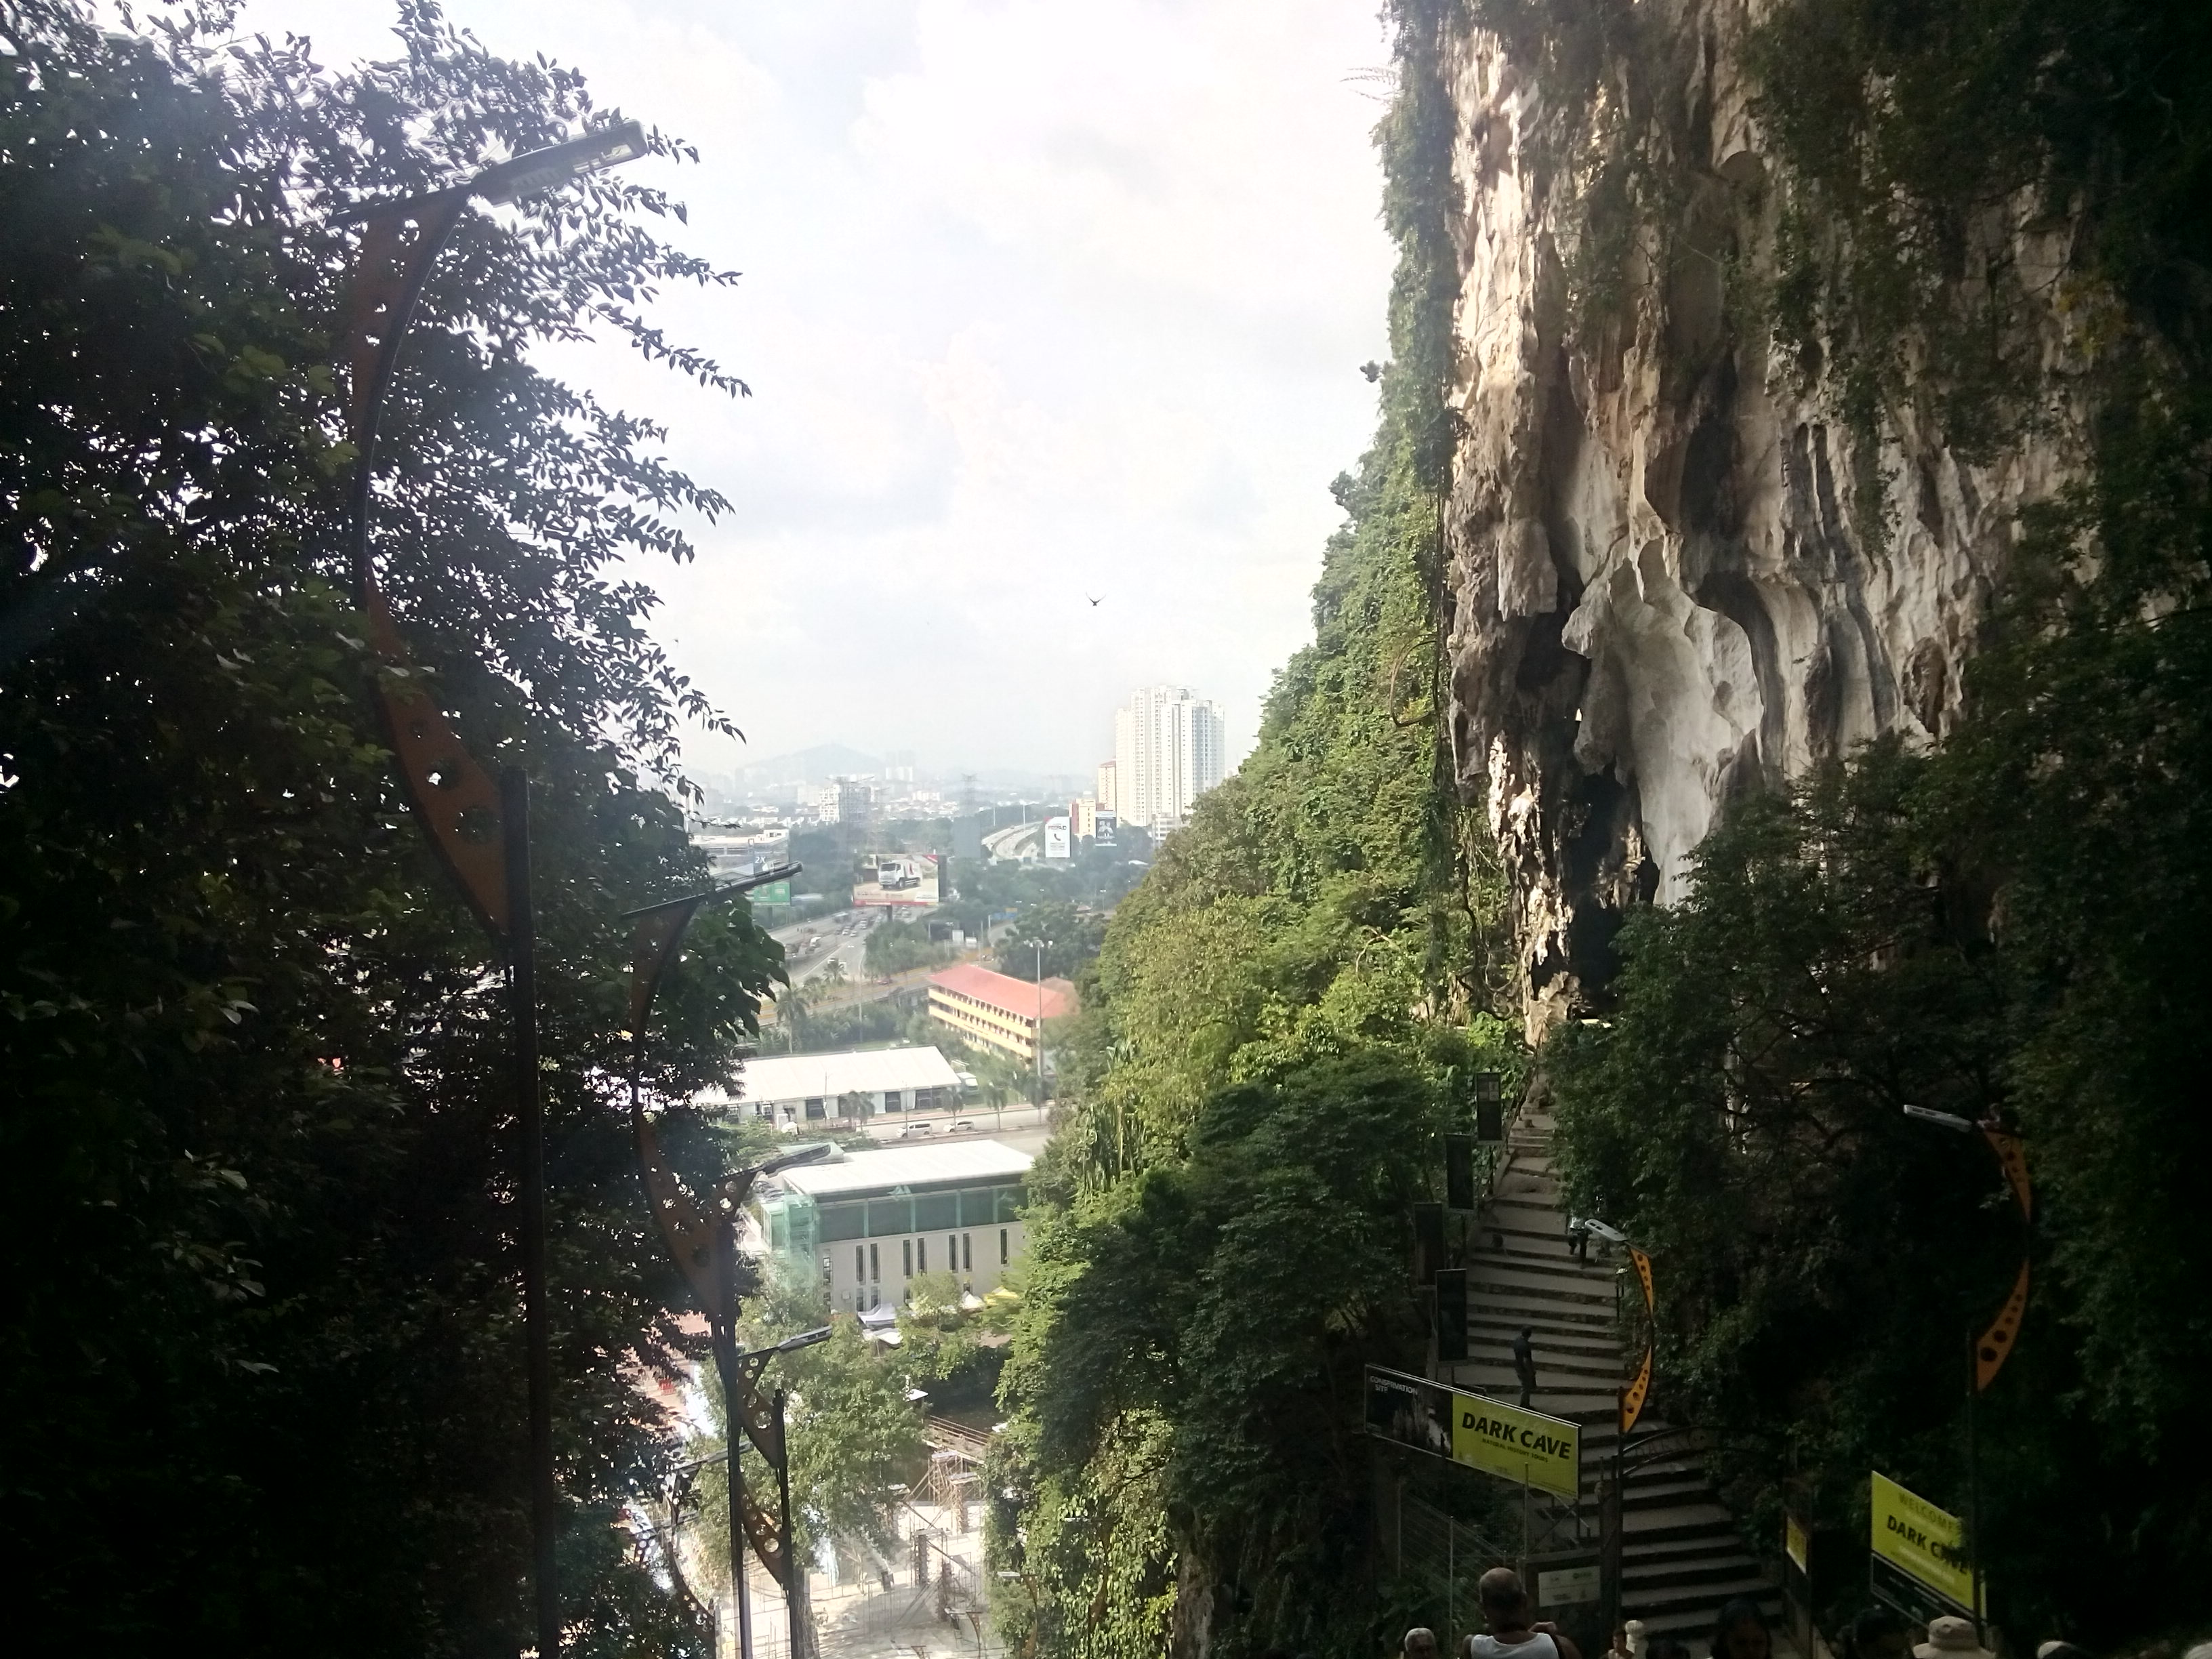 View from the stairs